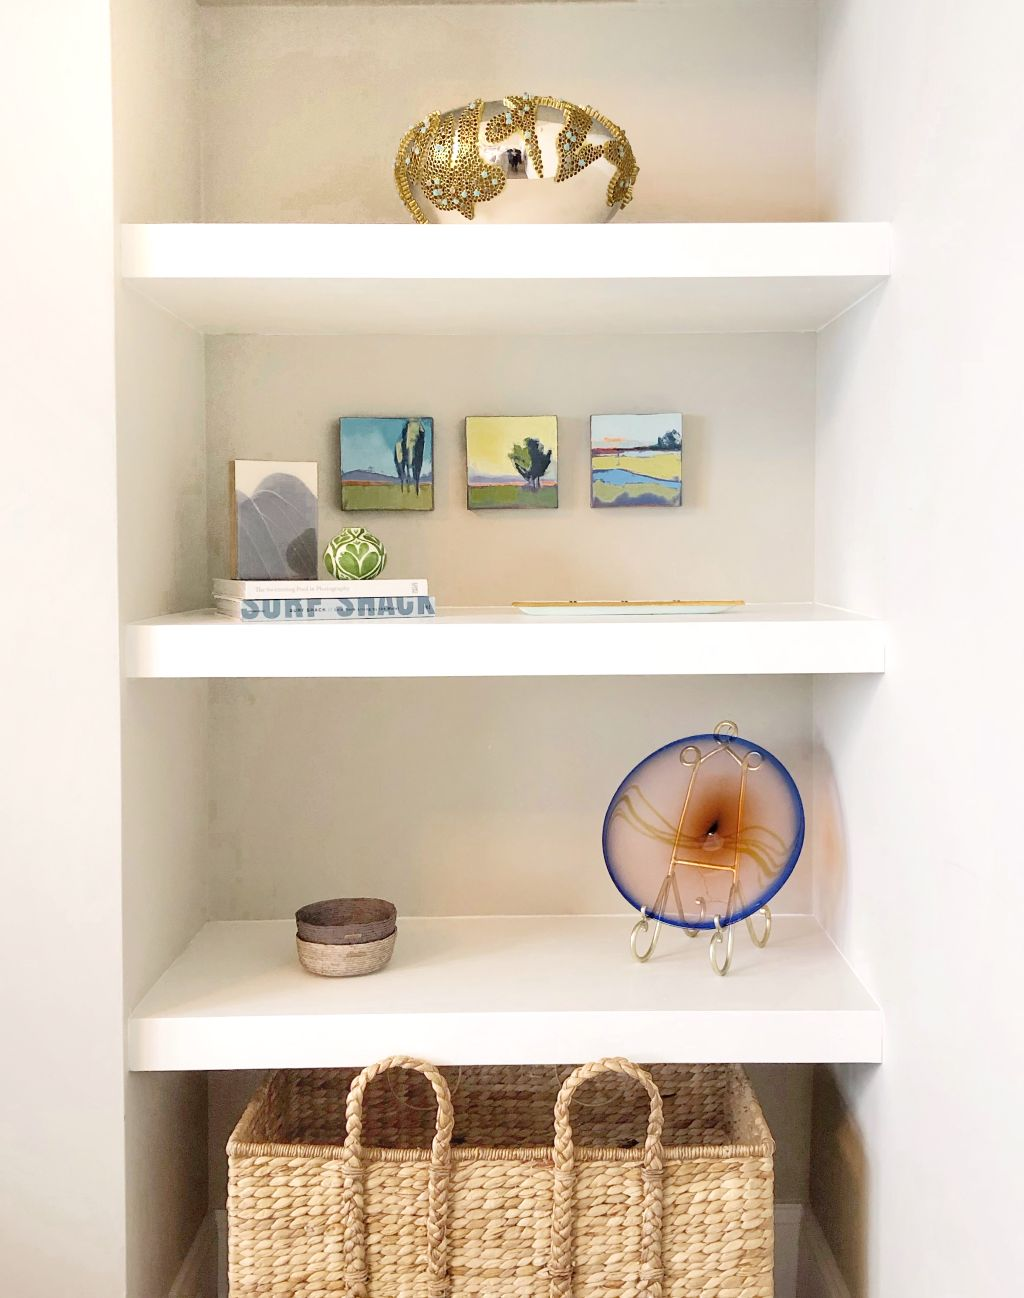 This was an empty niche. Substantial shelving was custom built on site to create a place to display the clients curated pieces we selected for them.